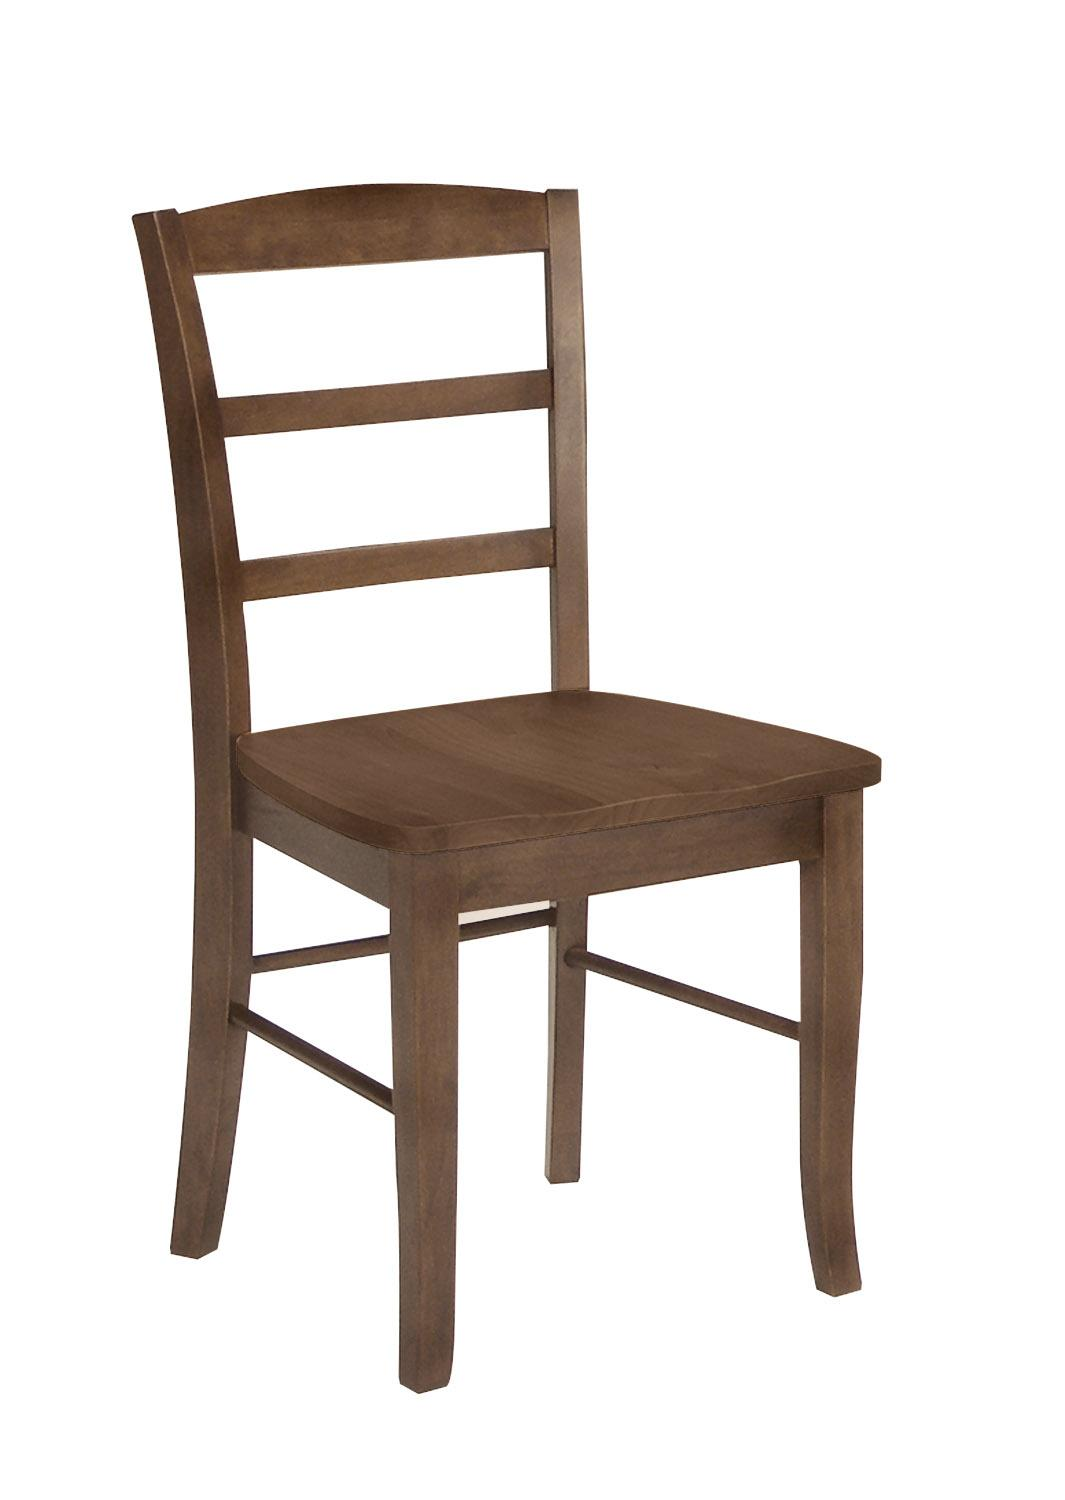 John Thomas Dining Essentials Ladderback Side Chair - Item Number: C04-2